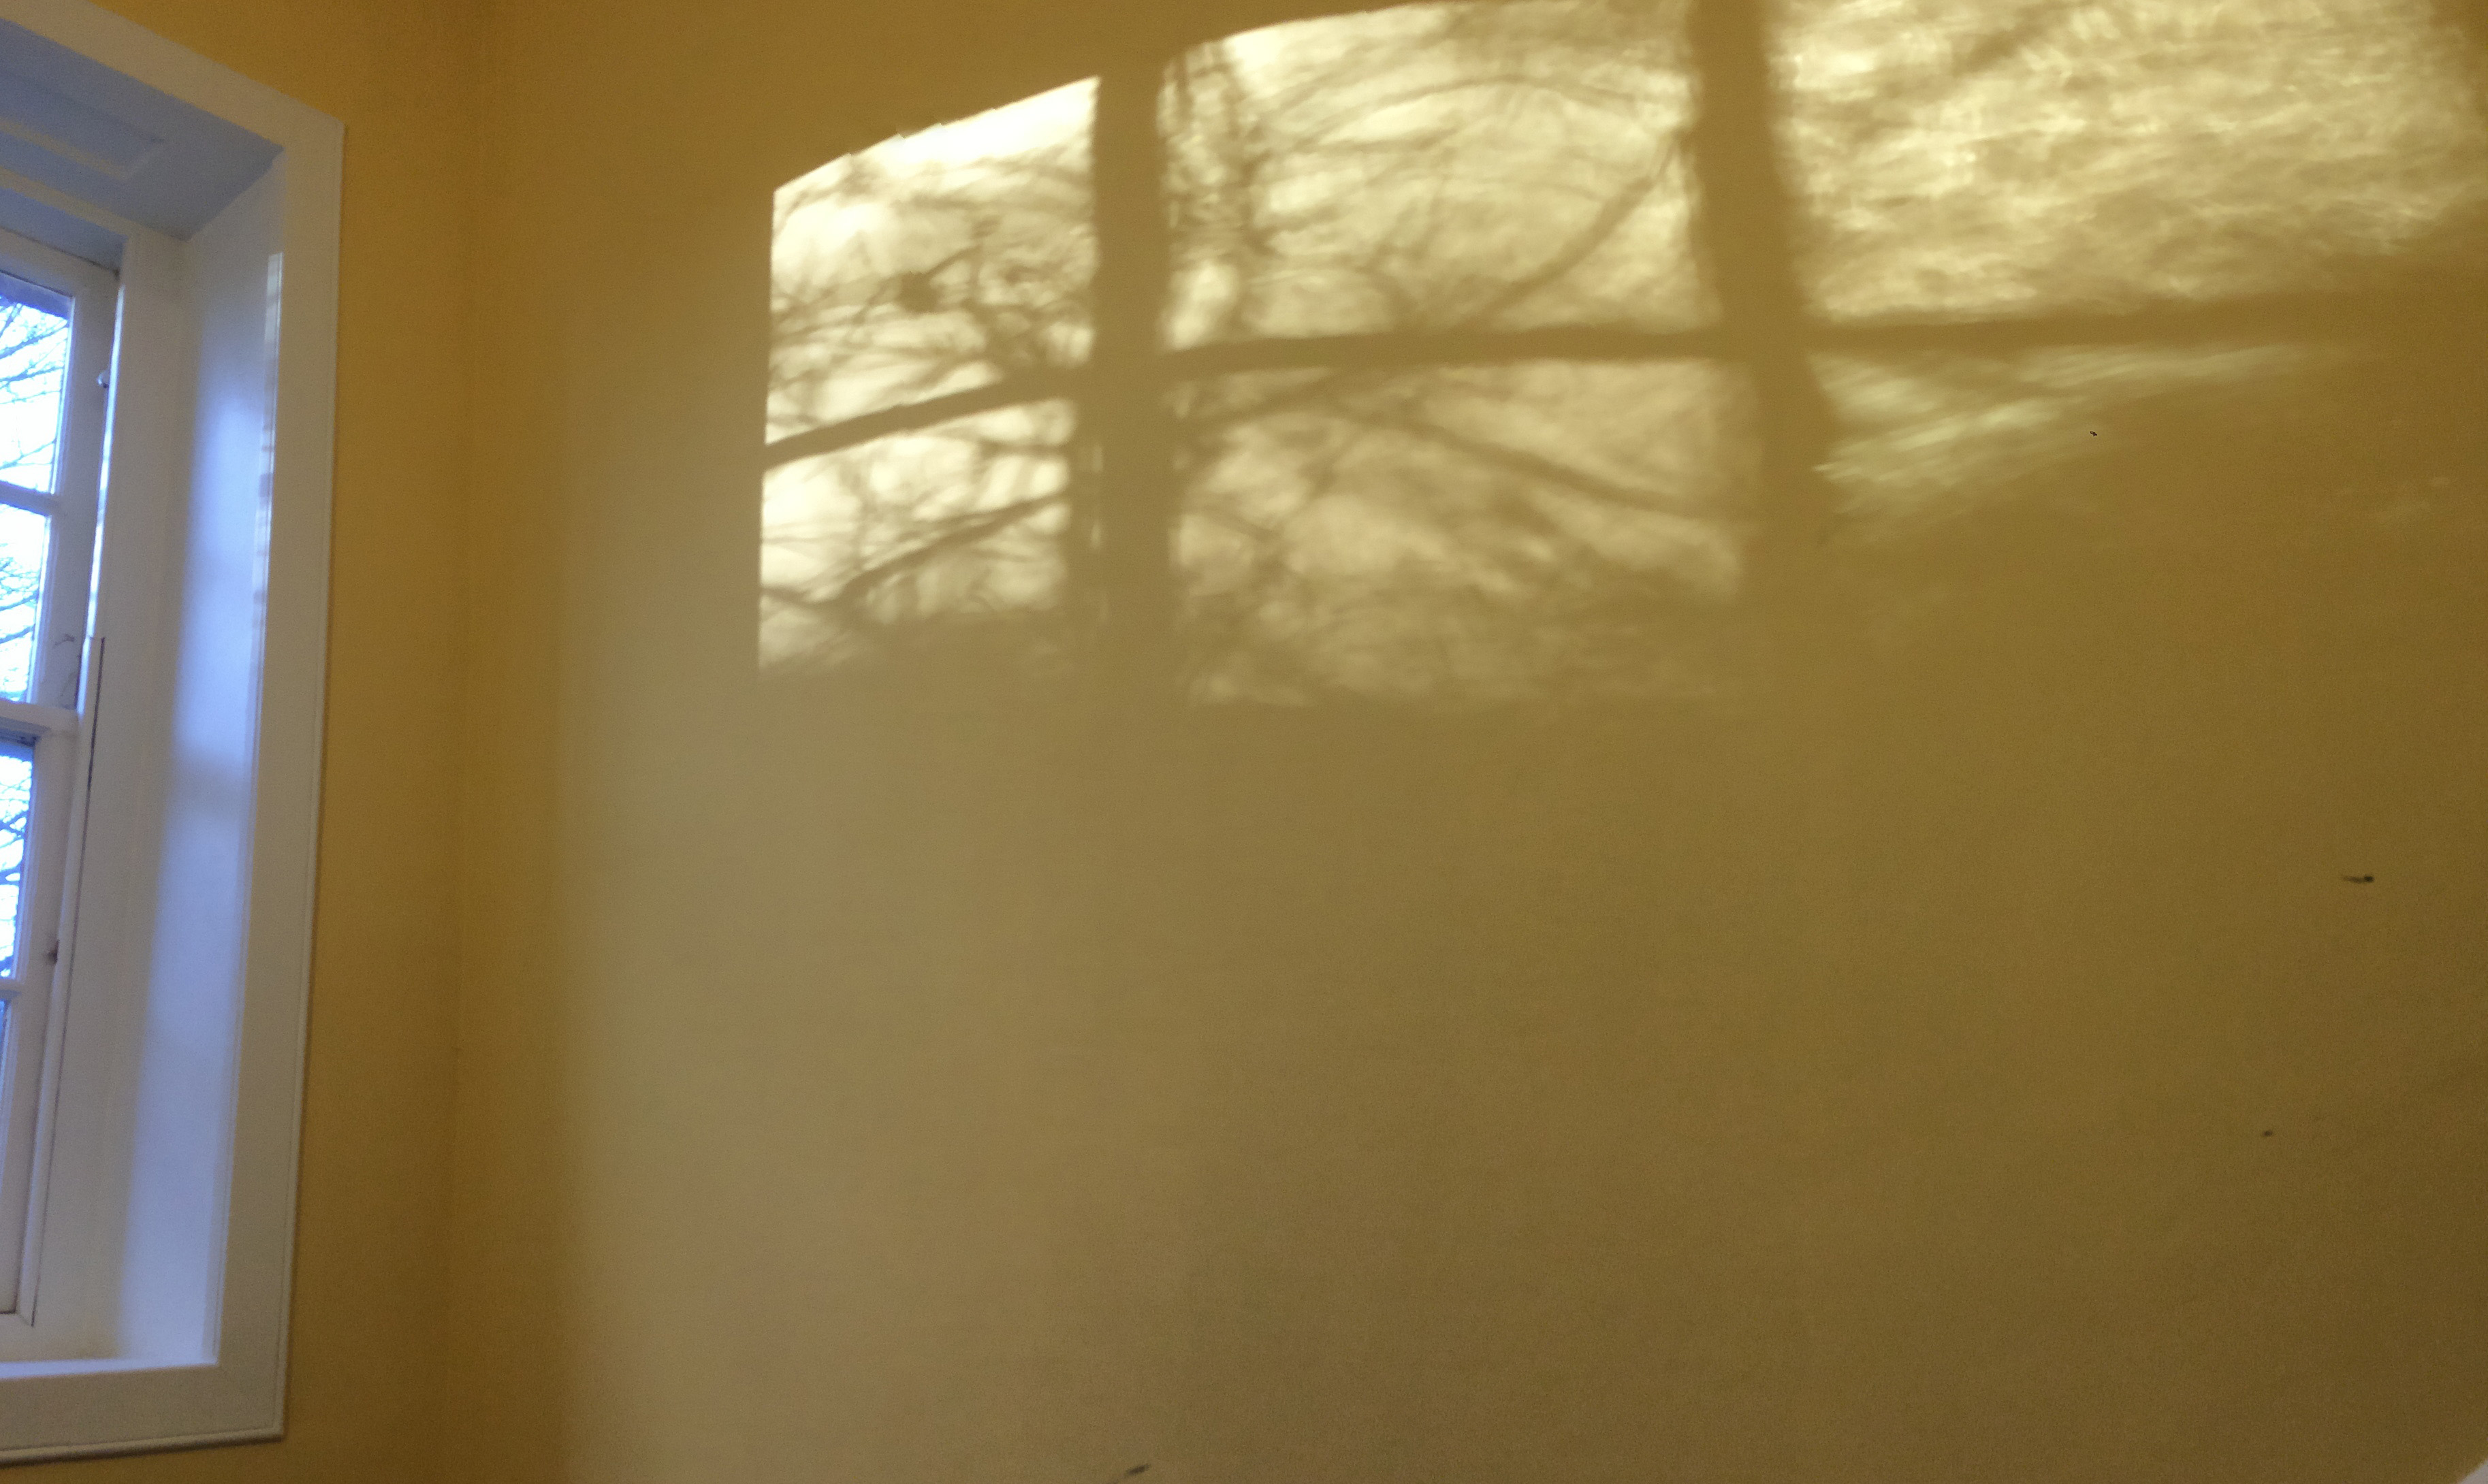 On a yellow wall there is a shadow from the window of trees in the garden